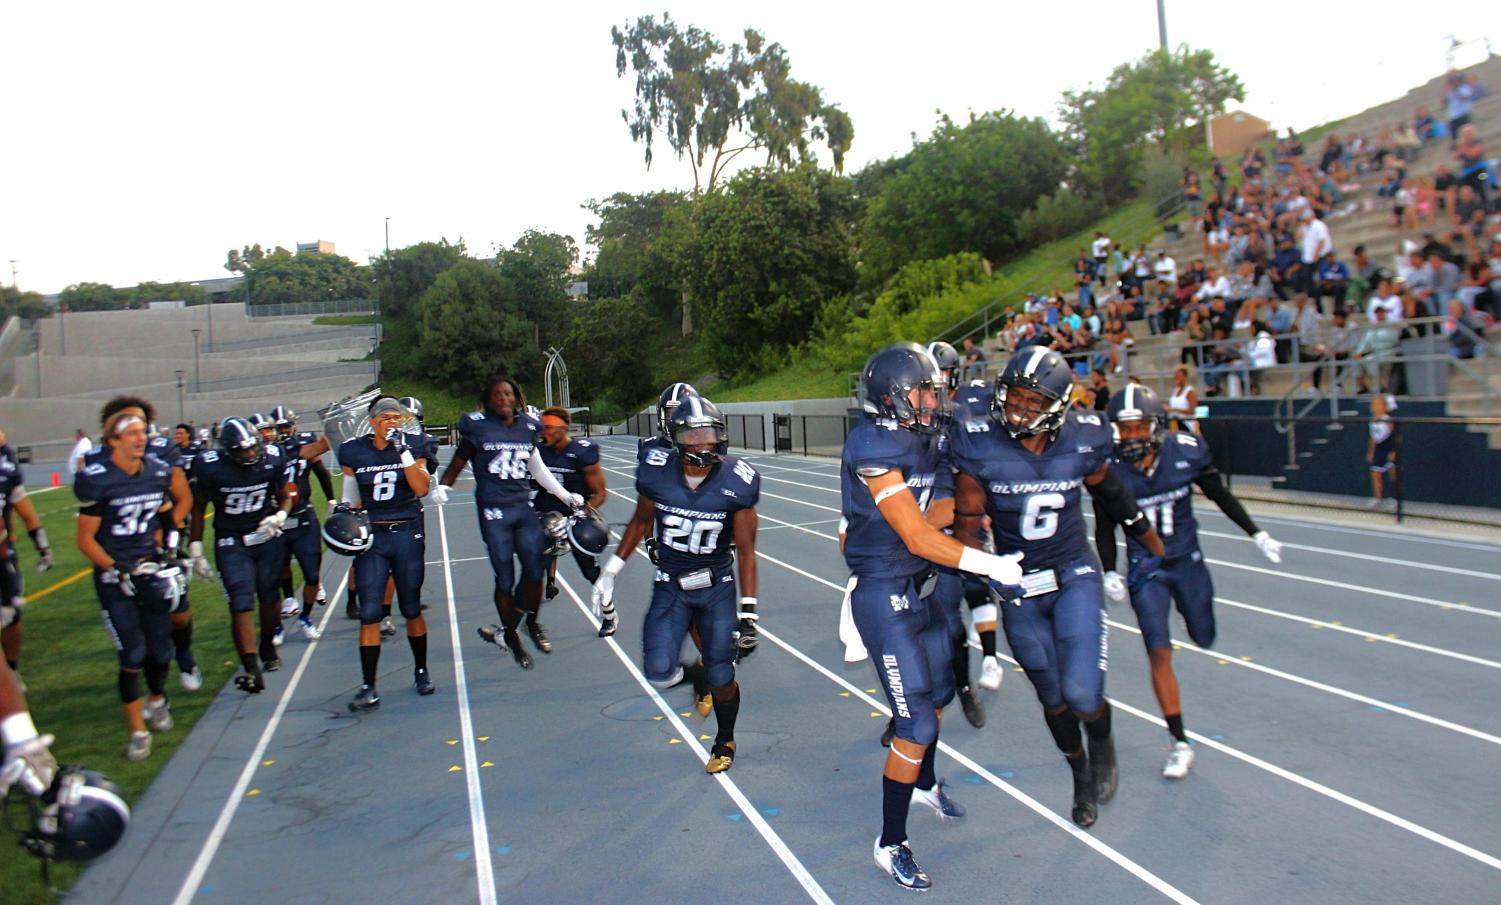 Team celebrates after LB Reginald Prince (#6) returns an interception for a touchdown in 40-14 Homecoming win.